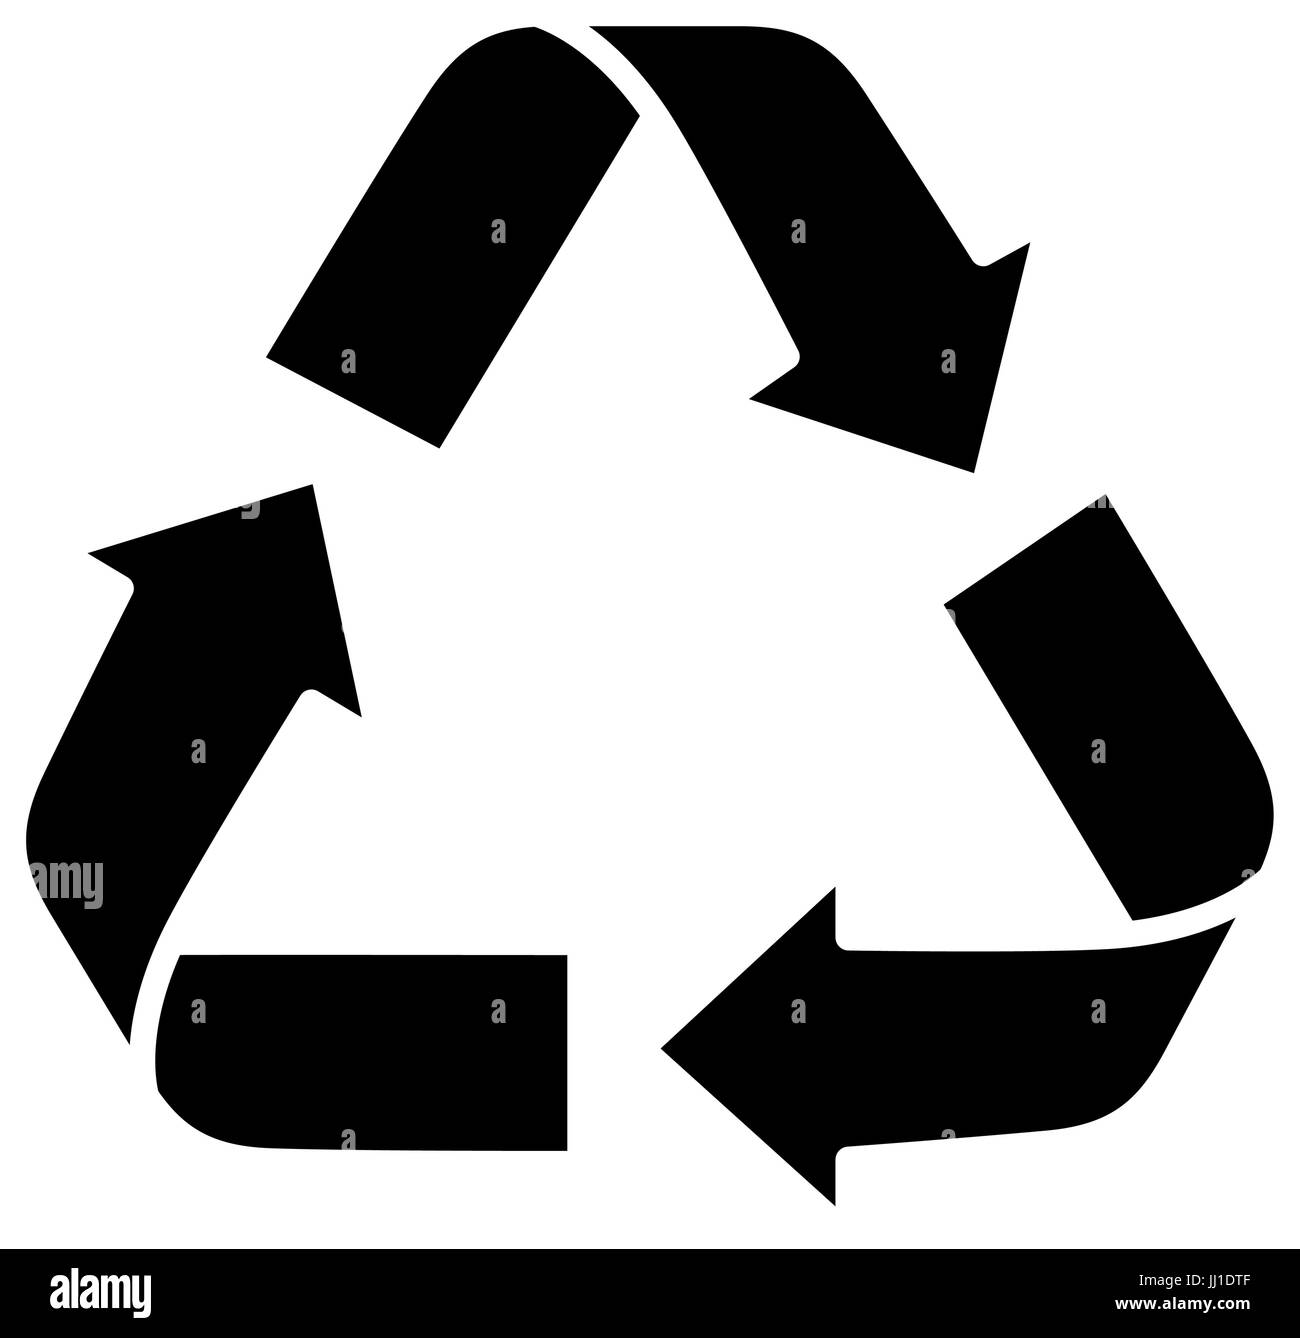 recycle sign icon - Stock Image